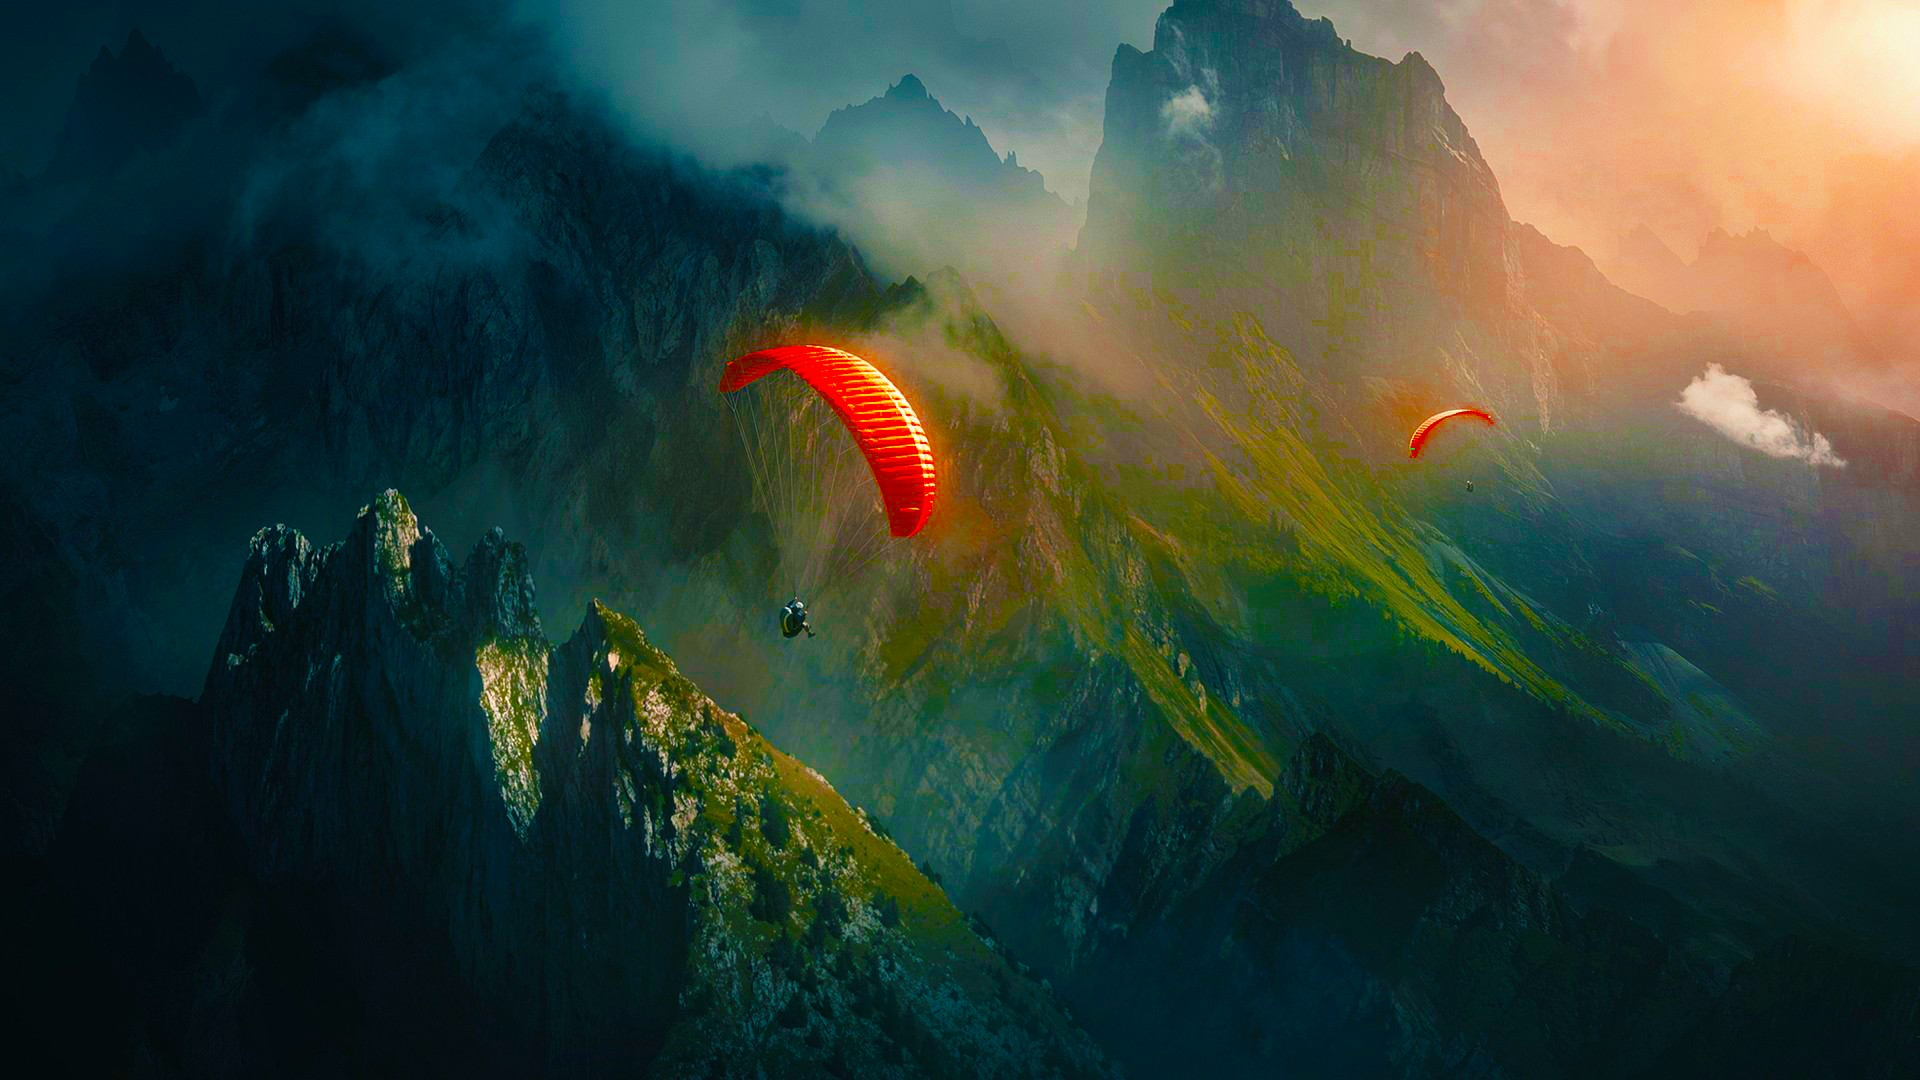 hd skydiving backgrounds